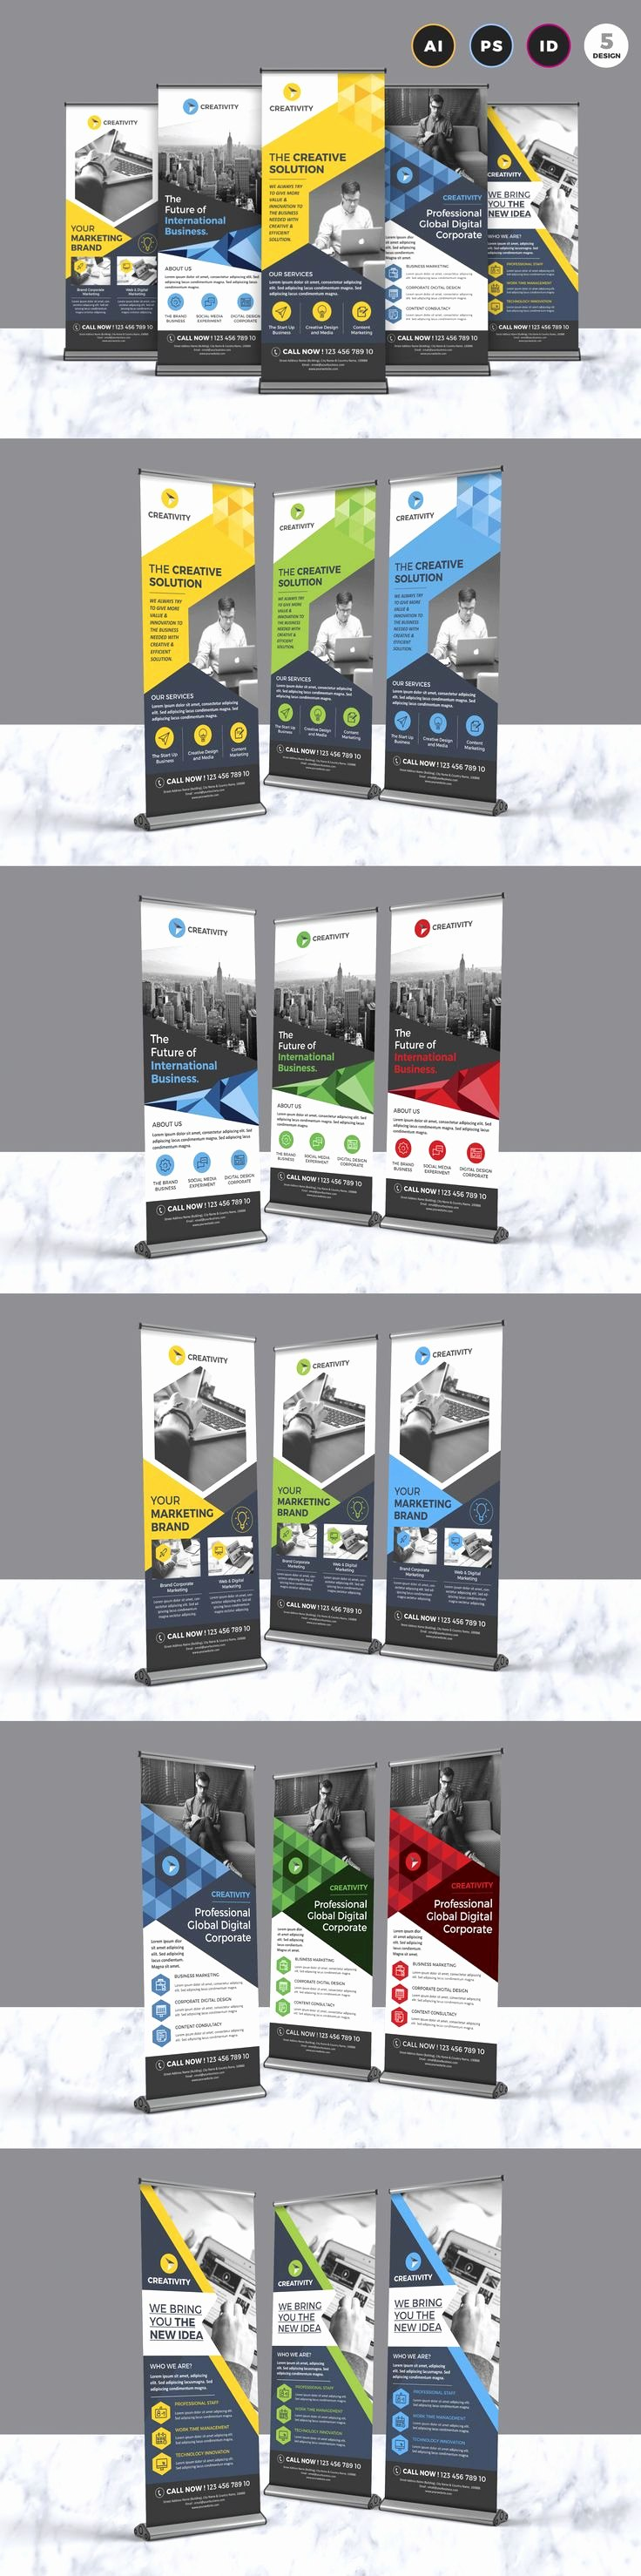 Retractable Banner Template Psd Luxury Standing Banner Template Shop Awesome Retractable